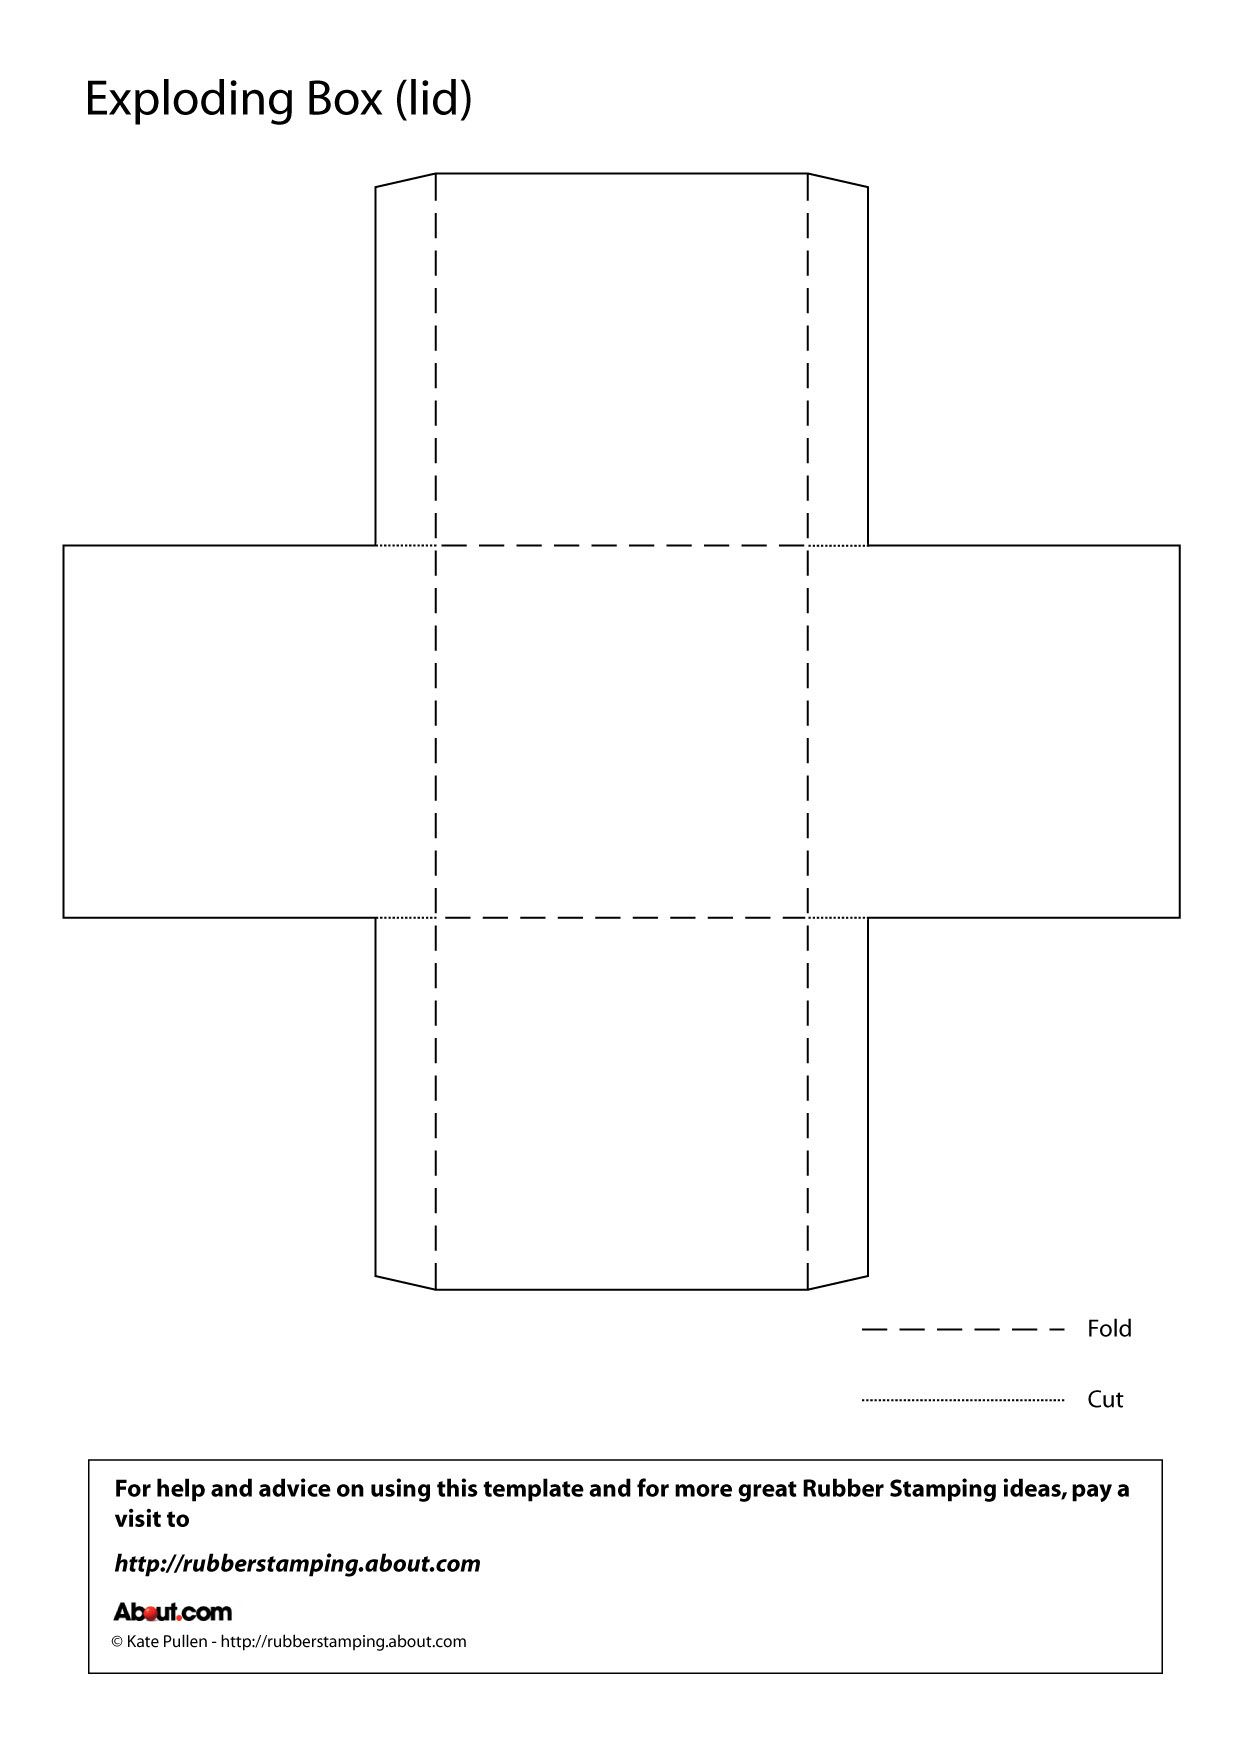 Printable Origami Box Instructions Make An Exploding Box With This Free Printable Template